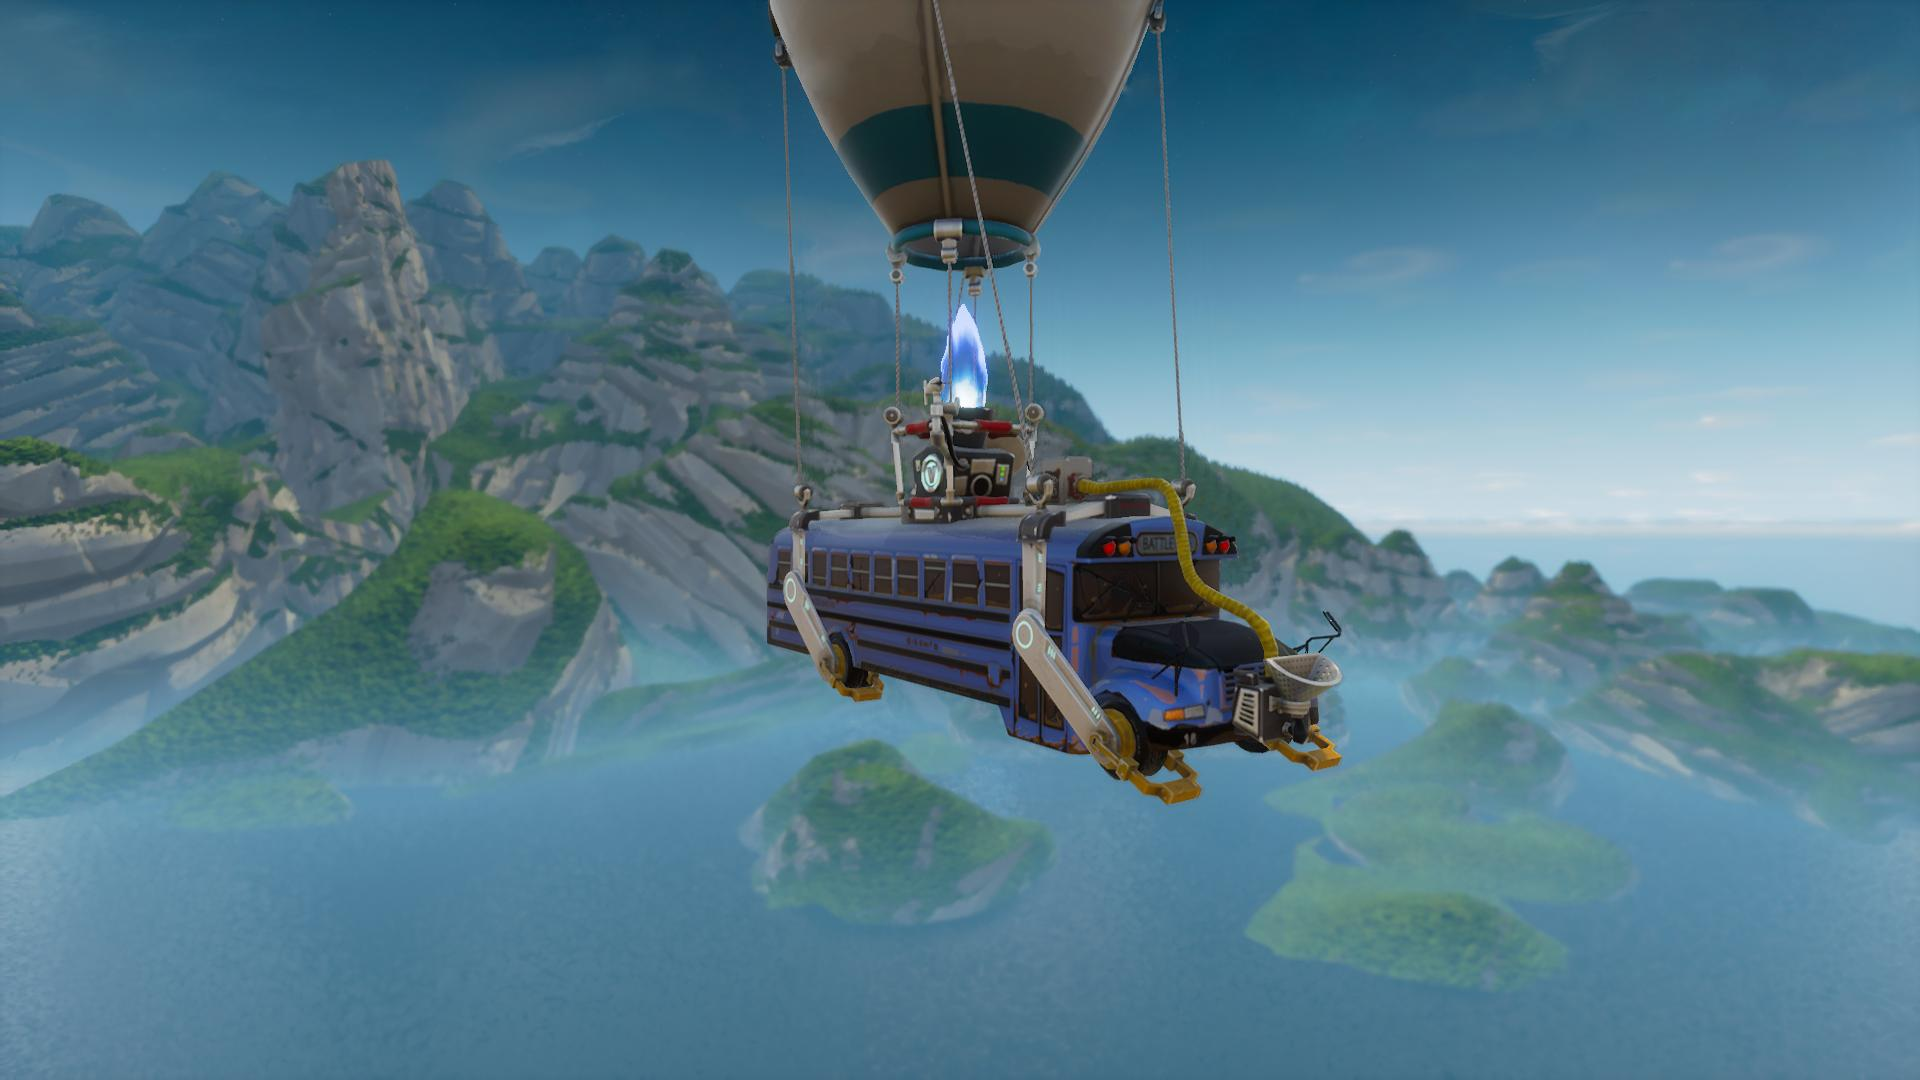 Fortnite Battle Bus Wallpaper 62254 1920x1080 px ~ HDWallSource.com